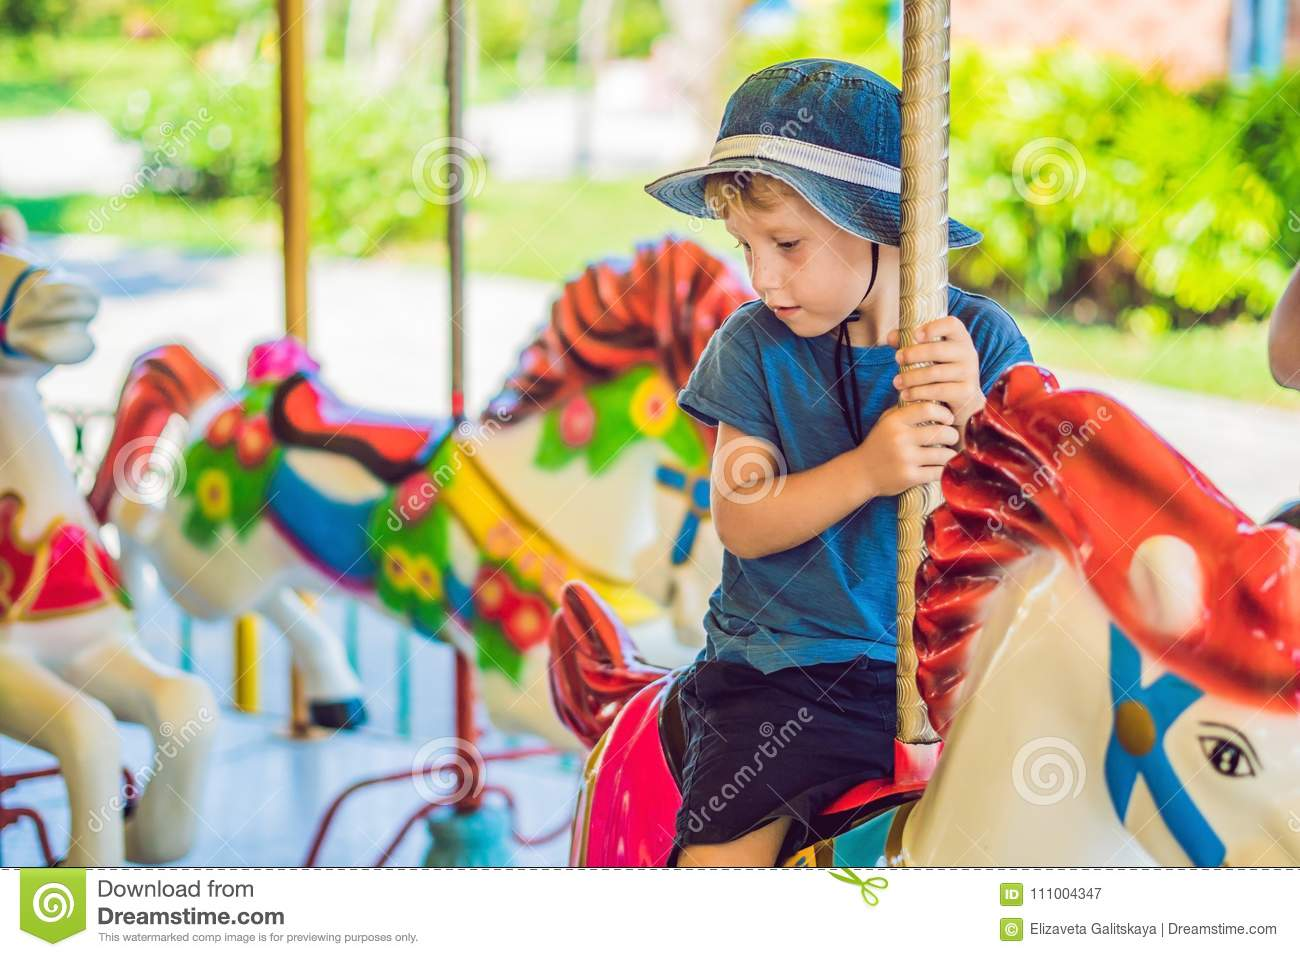 Cute little boy enjoying in funfair and riding on colorful carousel house